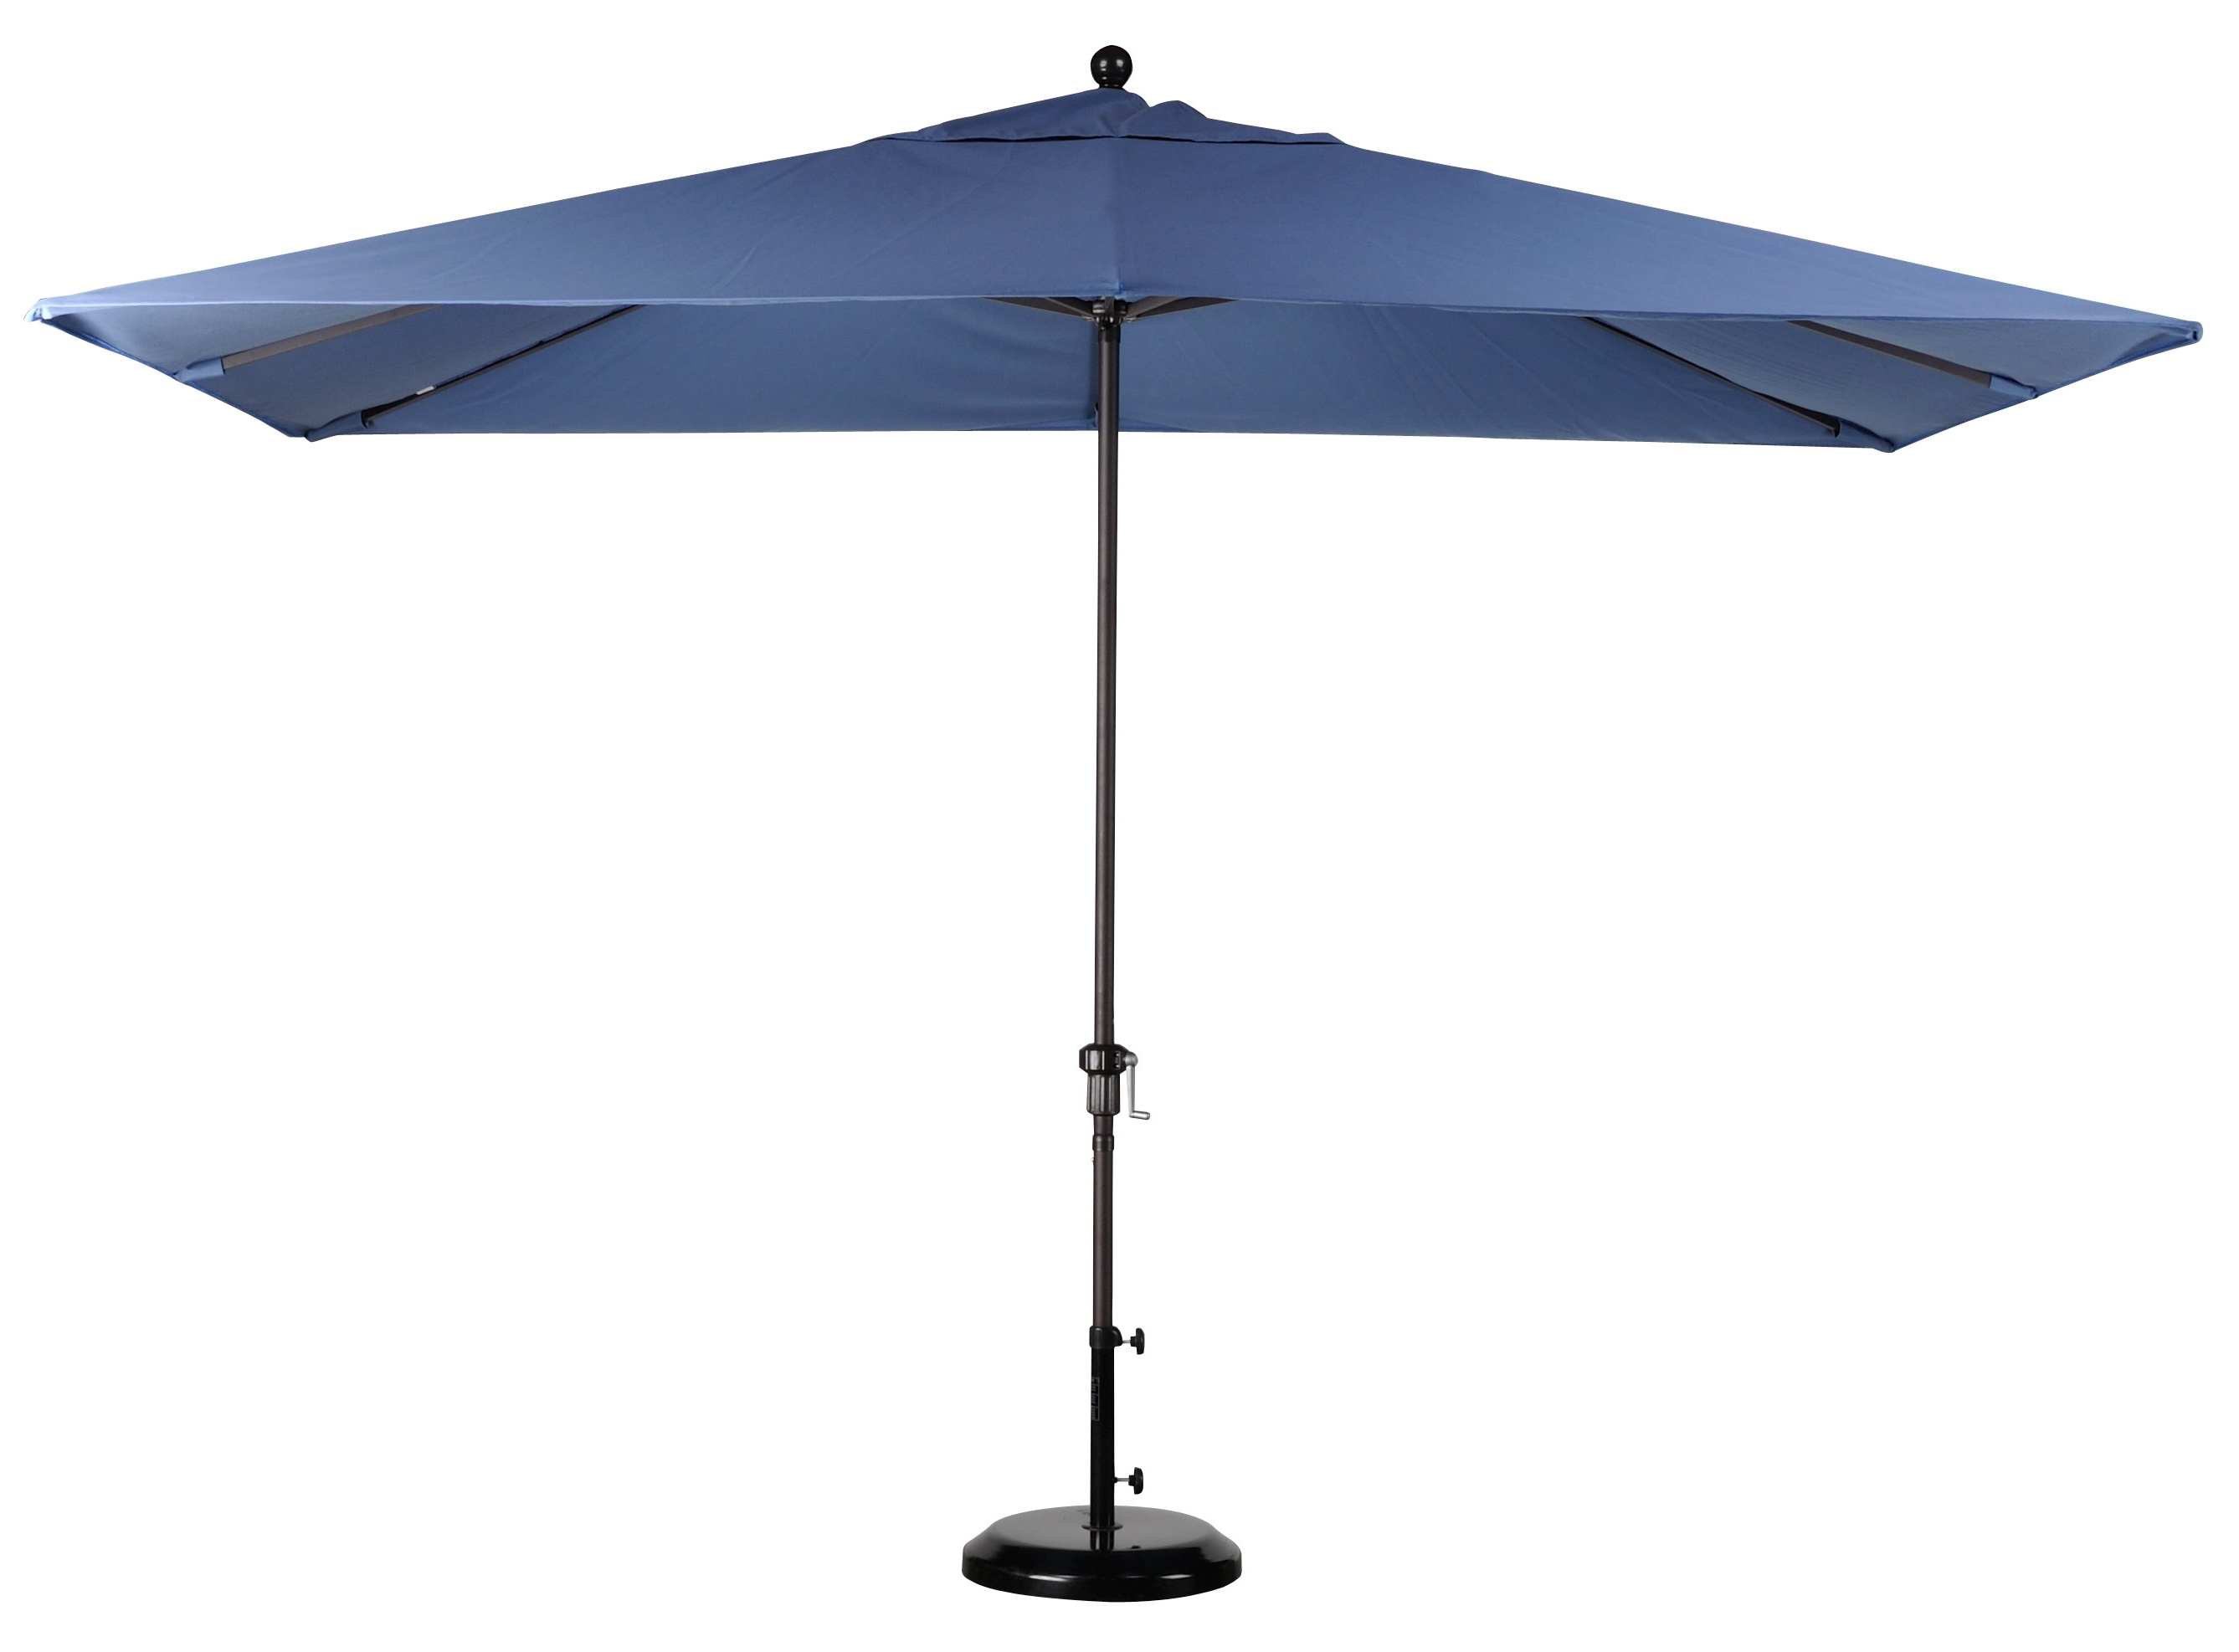 Best Selection Rectangular Market Umbrellas – Featuring Sunbrella For Well Known Square Sunbrella Patio Umbrellas (View 5 of 20)